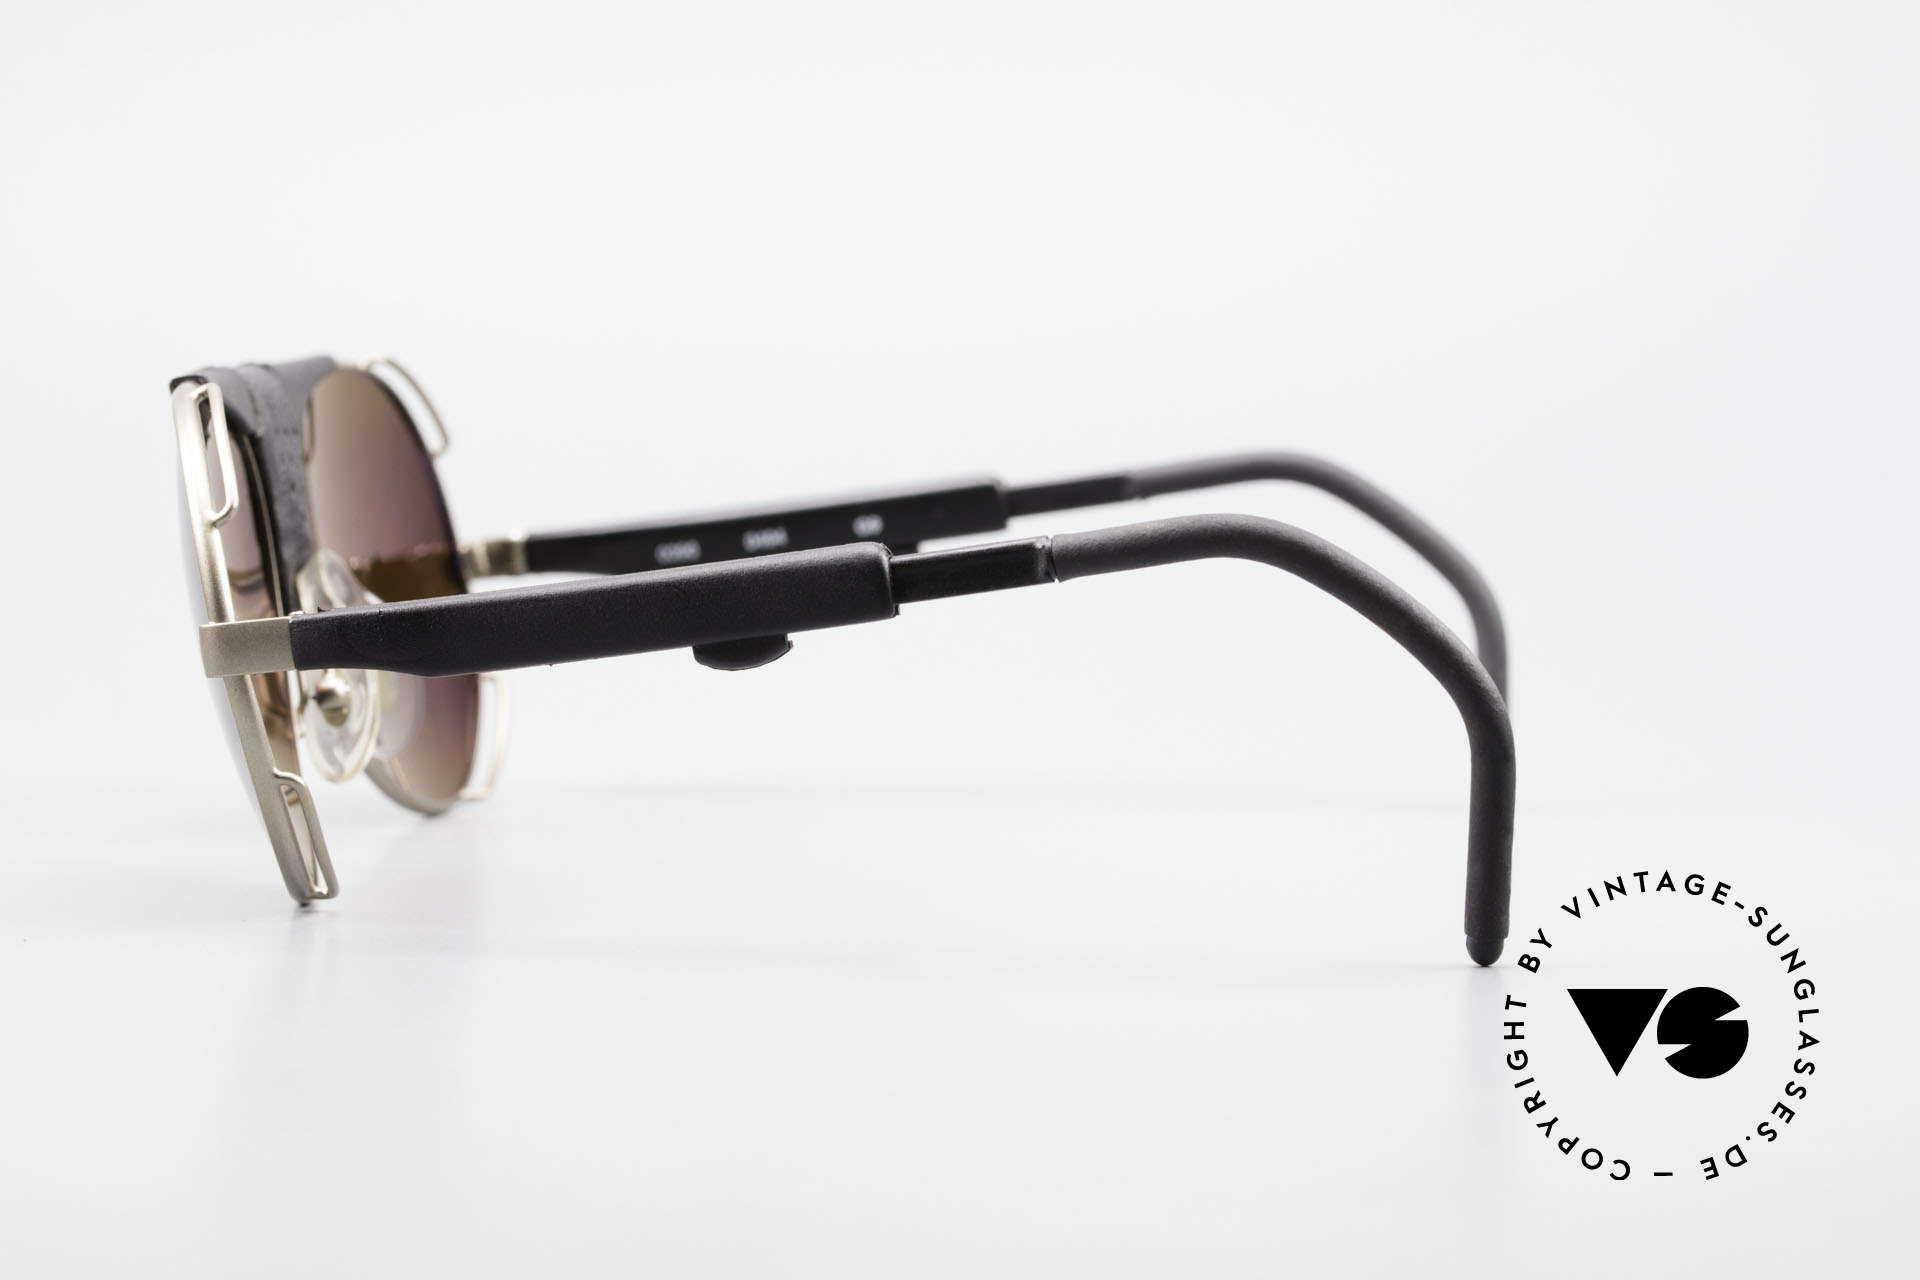 Cebe 390 Walter Cecchinel Sports Shades, never worn (like all our vintage CEBE sports sunglasses), Made for Men and Women